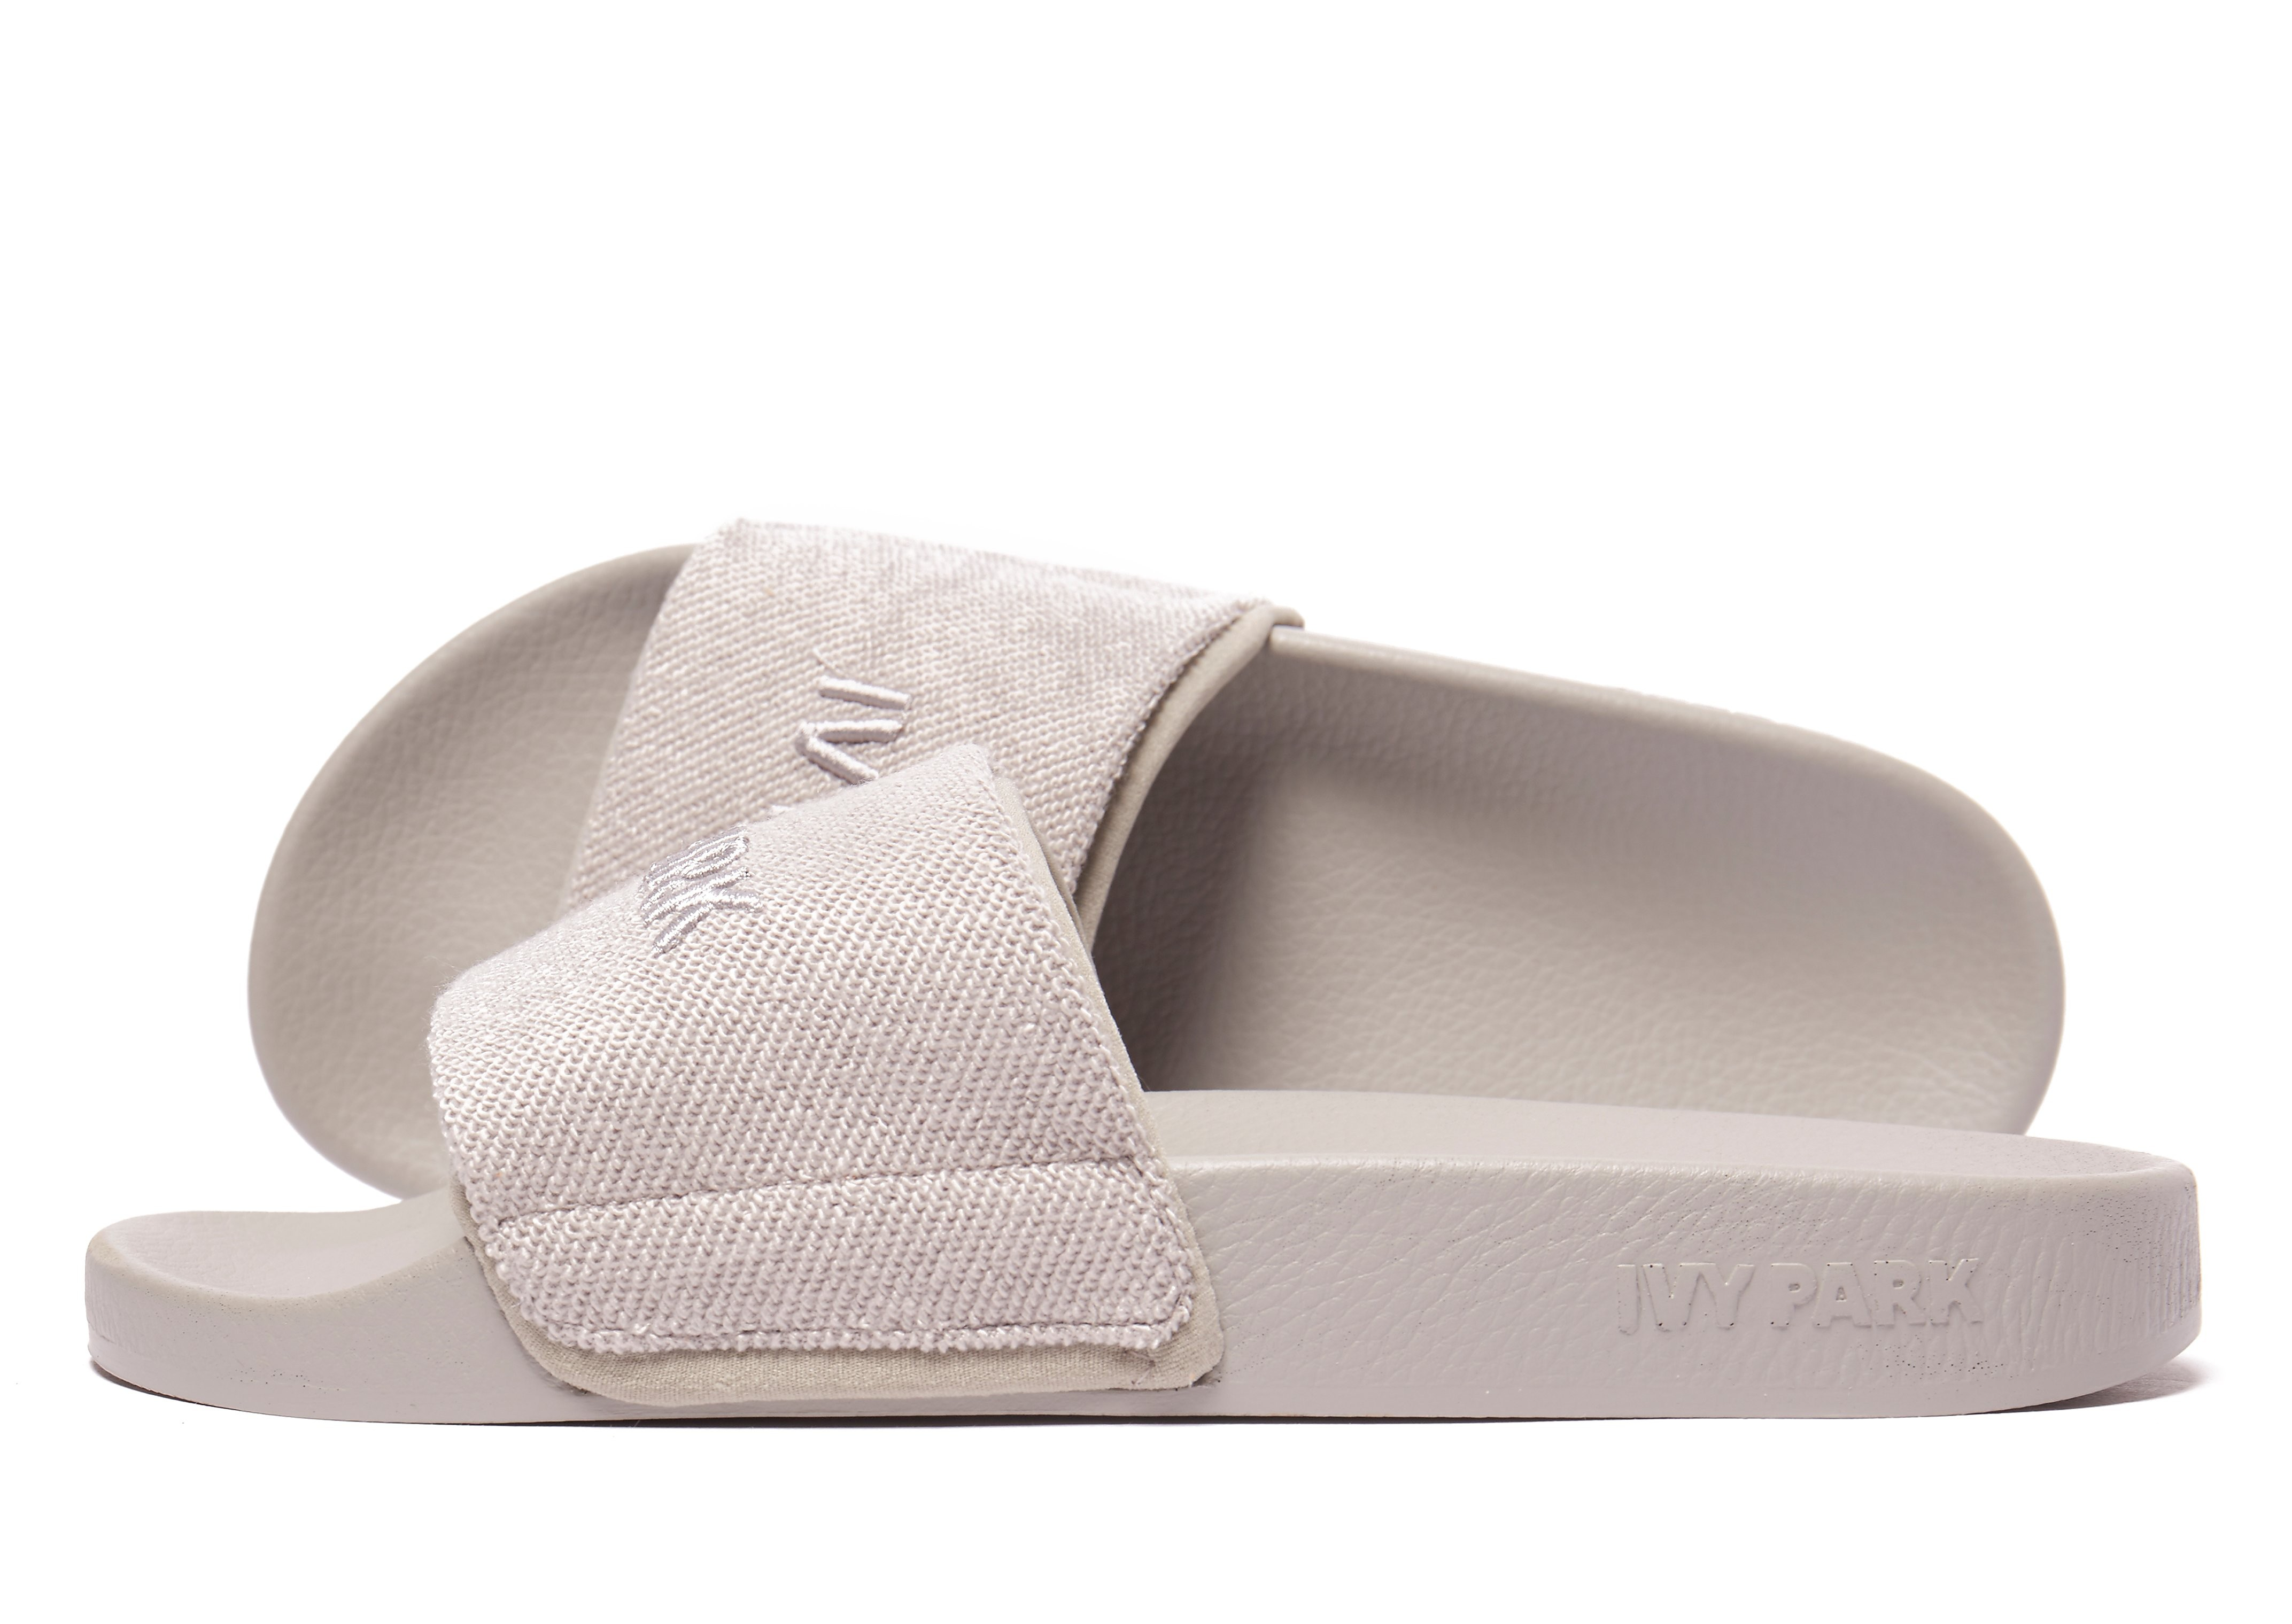 IVY PARK Loopback Slides Women's